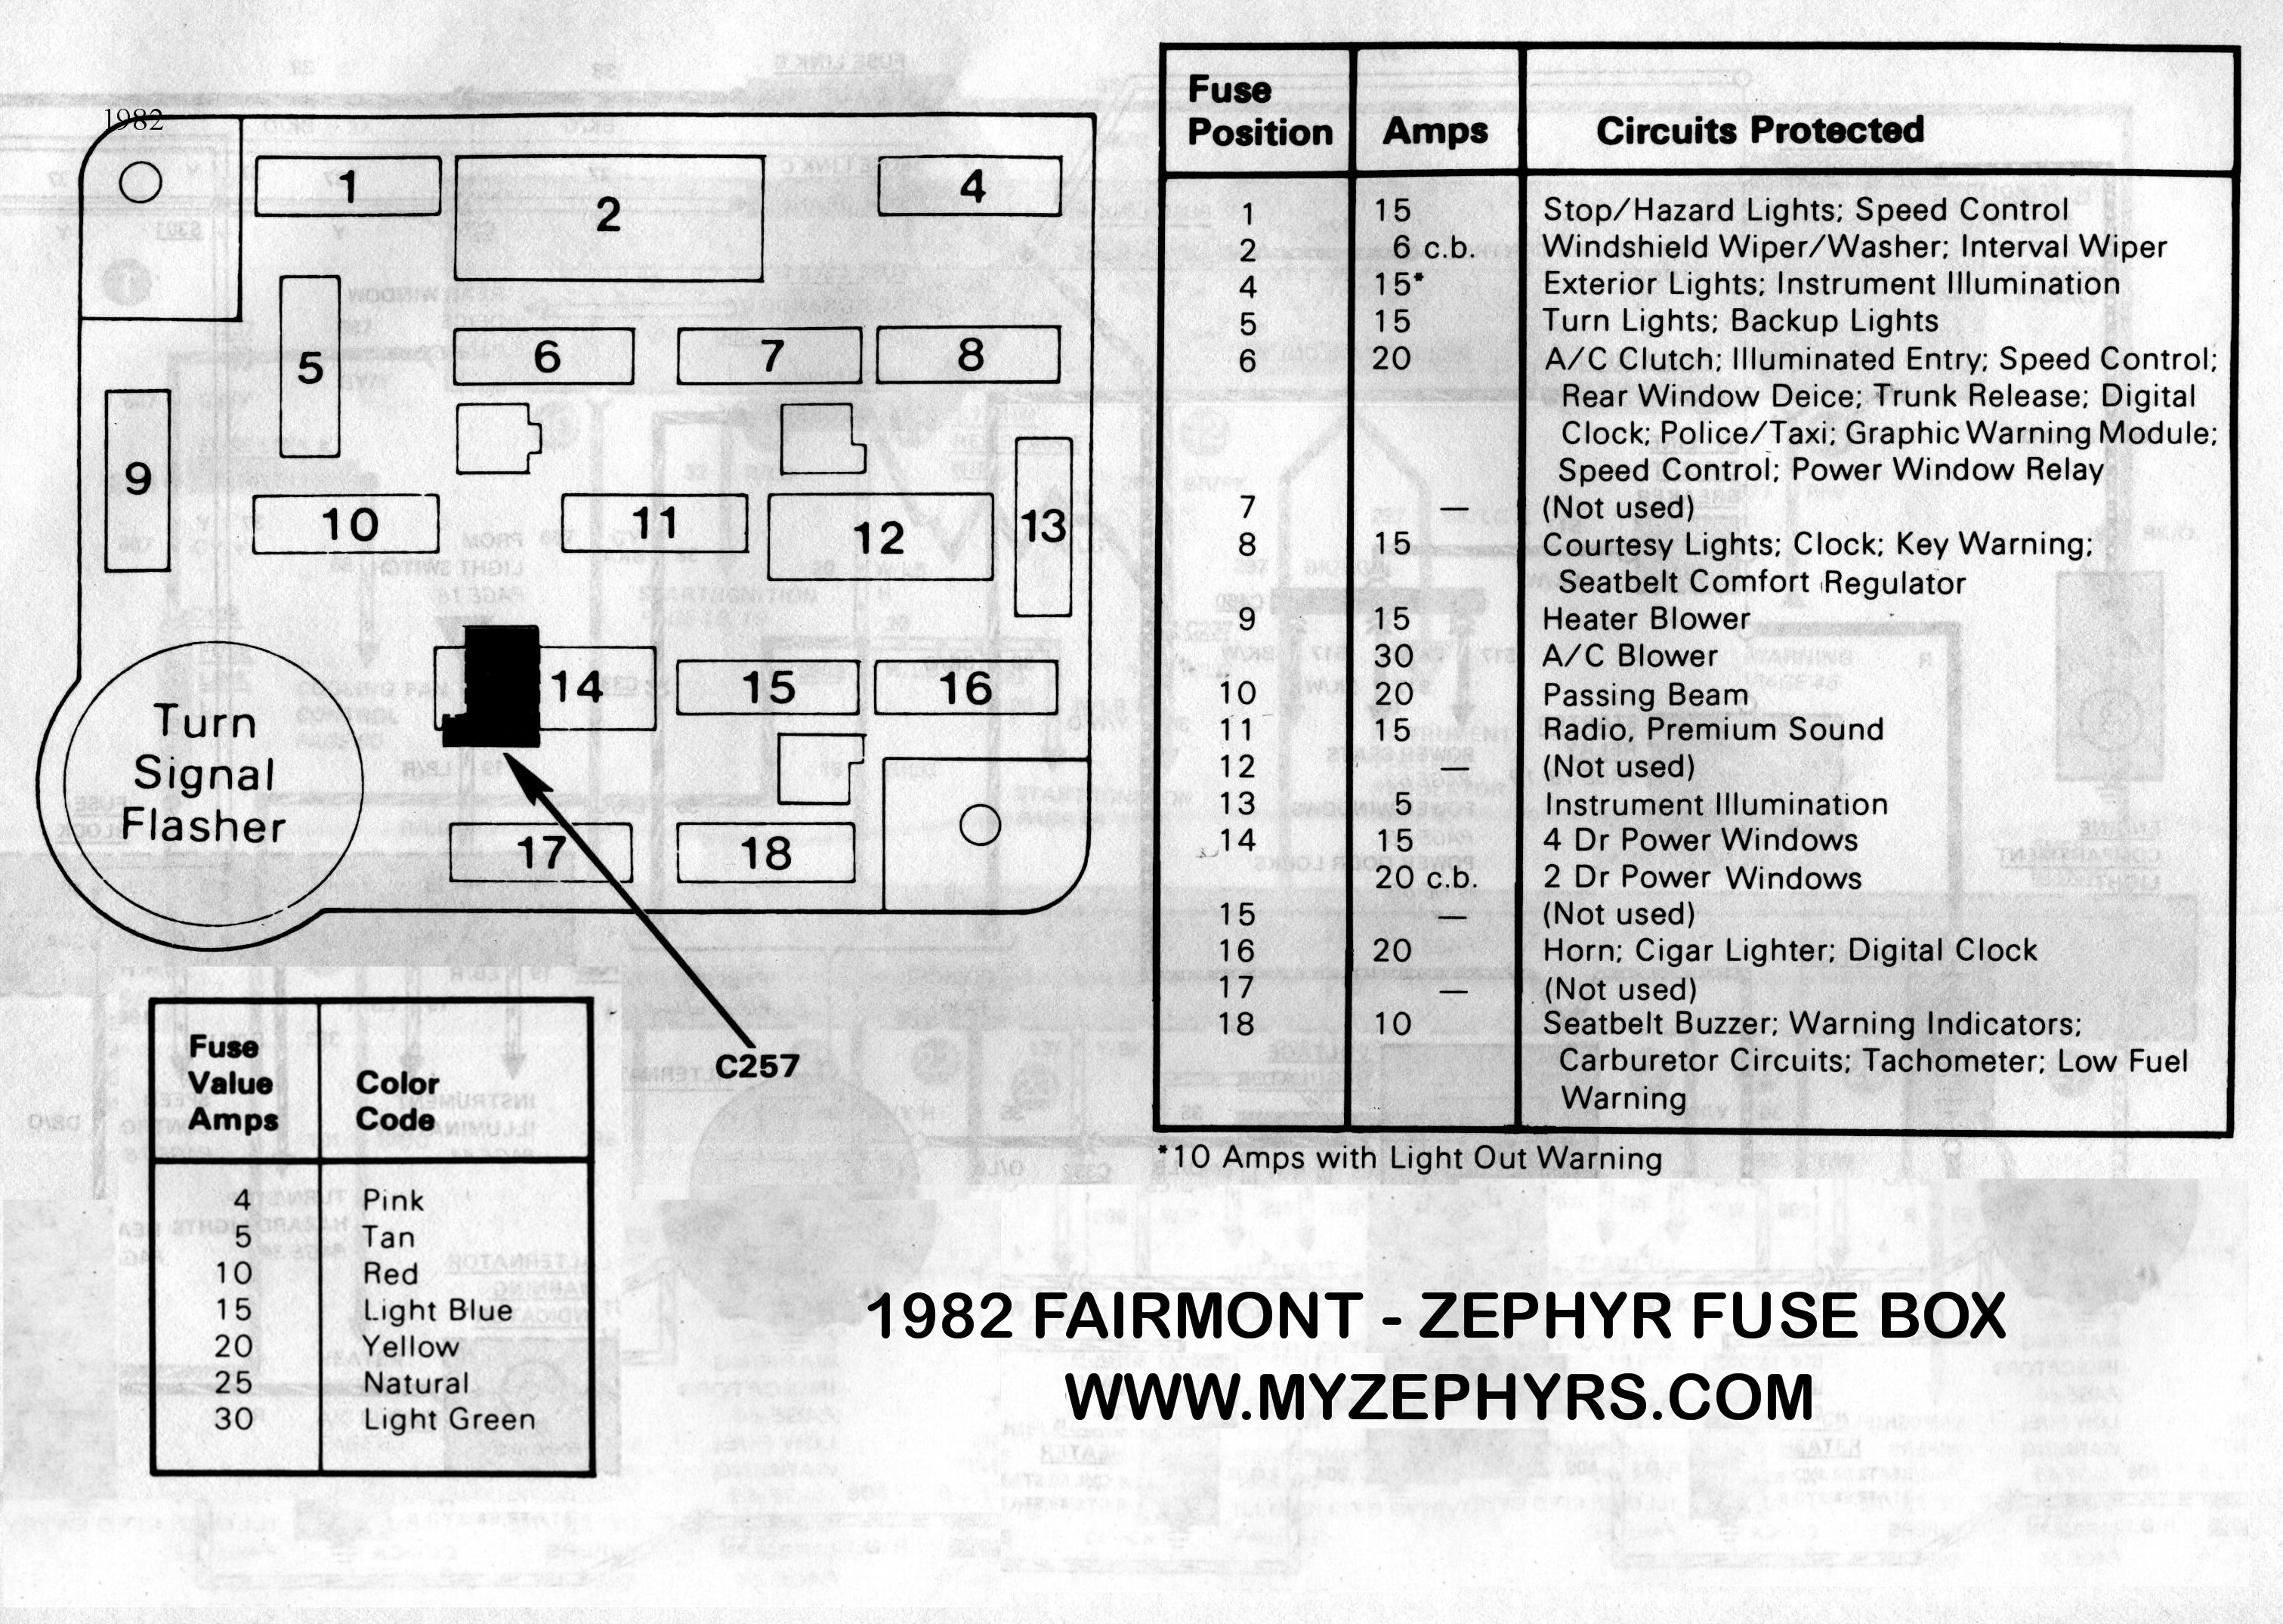 83 mustang fuse box 79 mustang fuse panel diagram | wiring diagram 1969 ford mustang fuse box